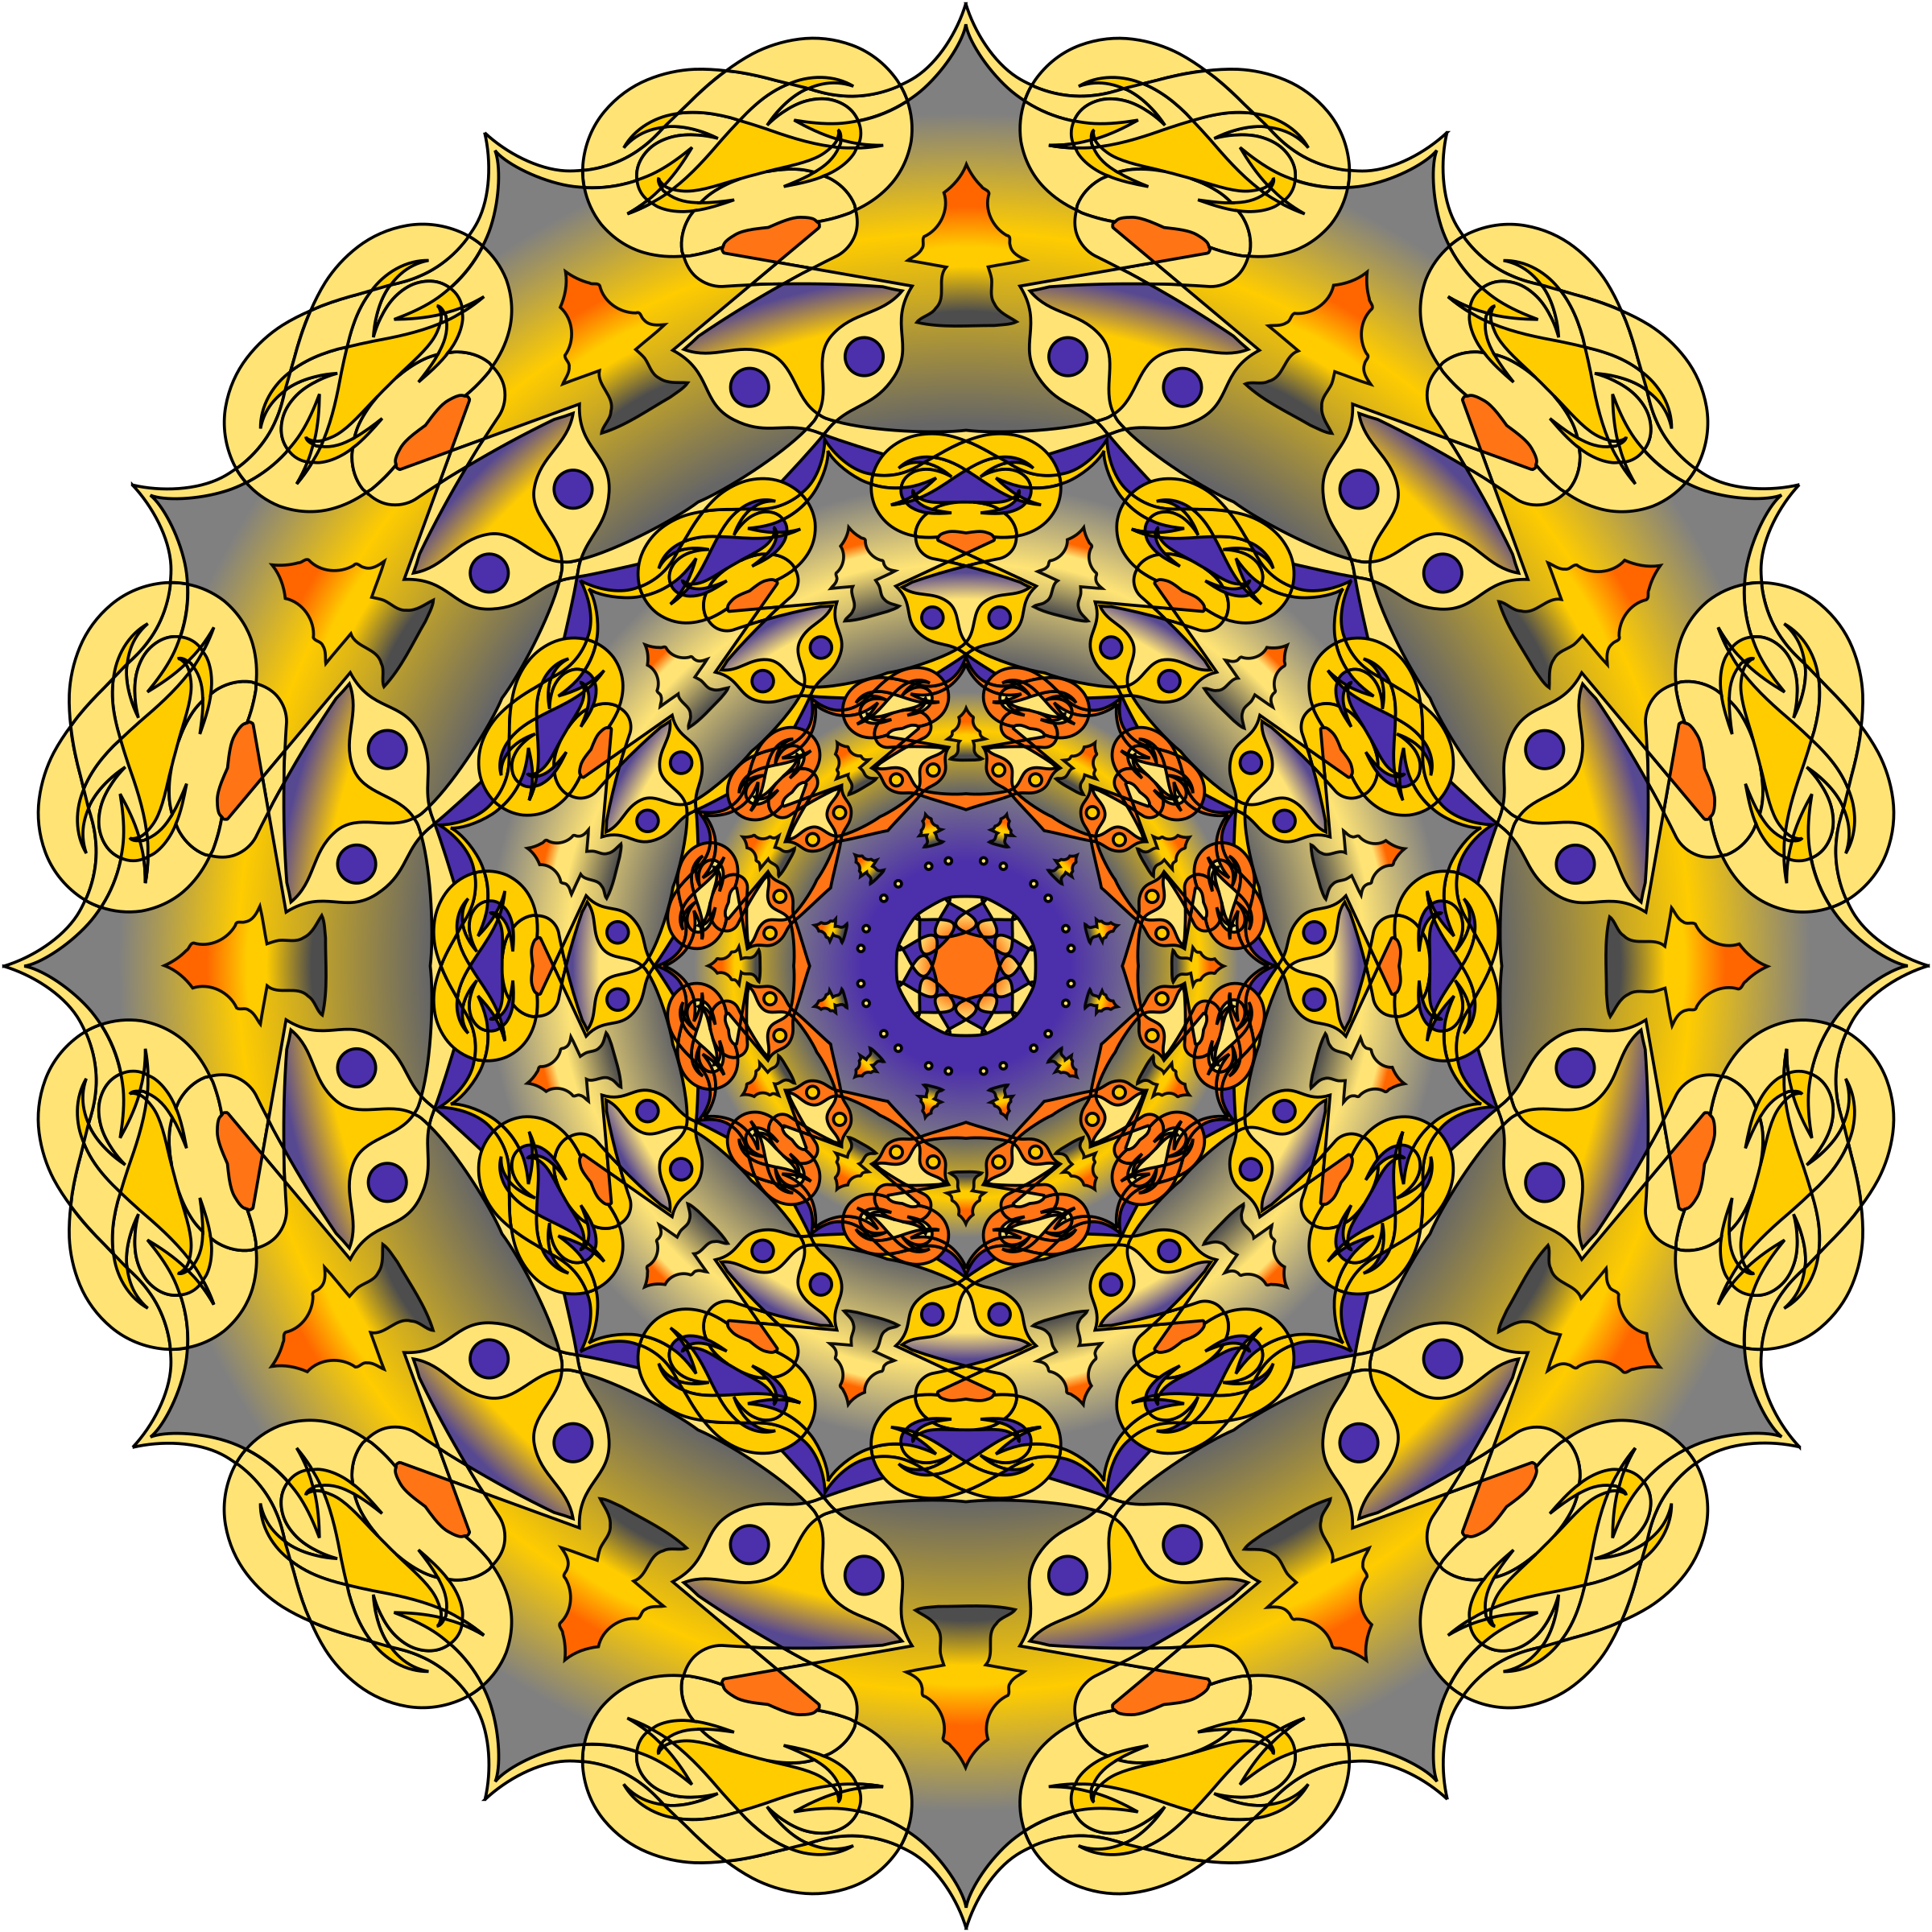 Purple and gold mandala by Tomas Sobek